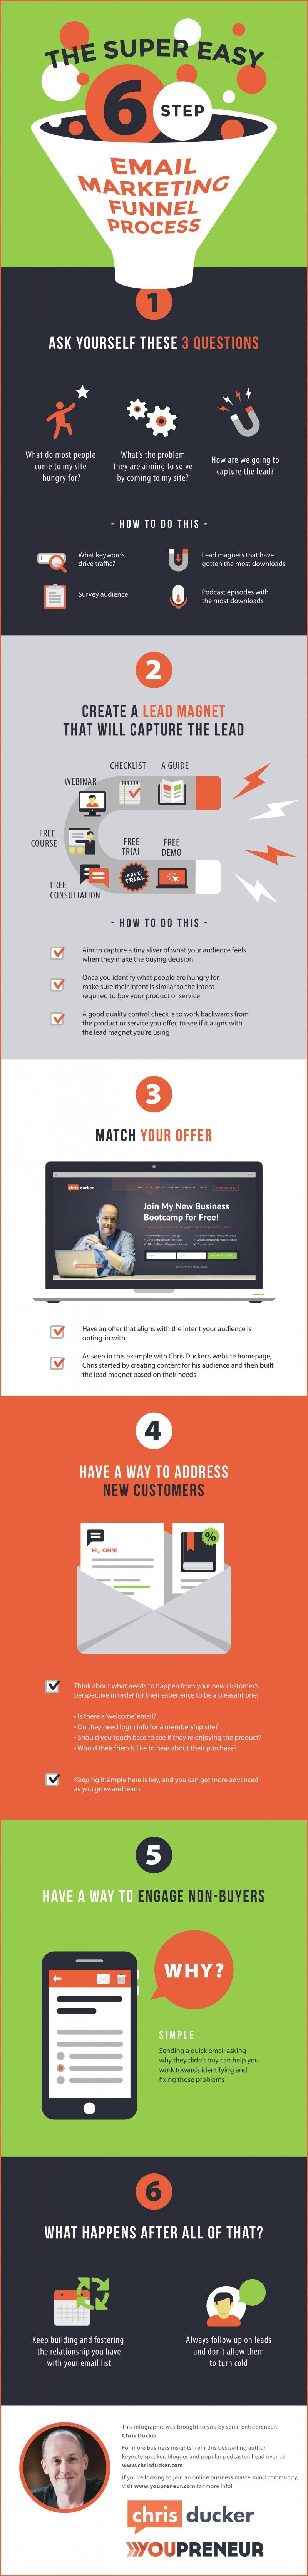 The step by step process to get your readers to move into your email marketing funnel and grow your email subscriber list.